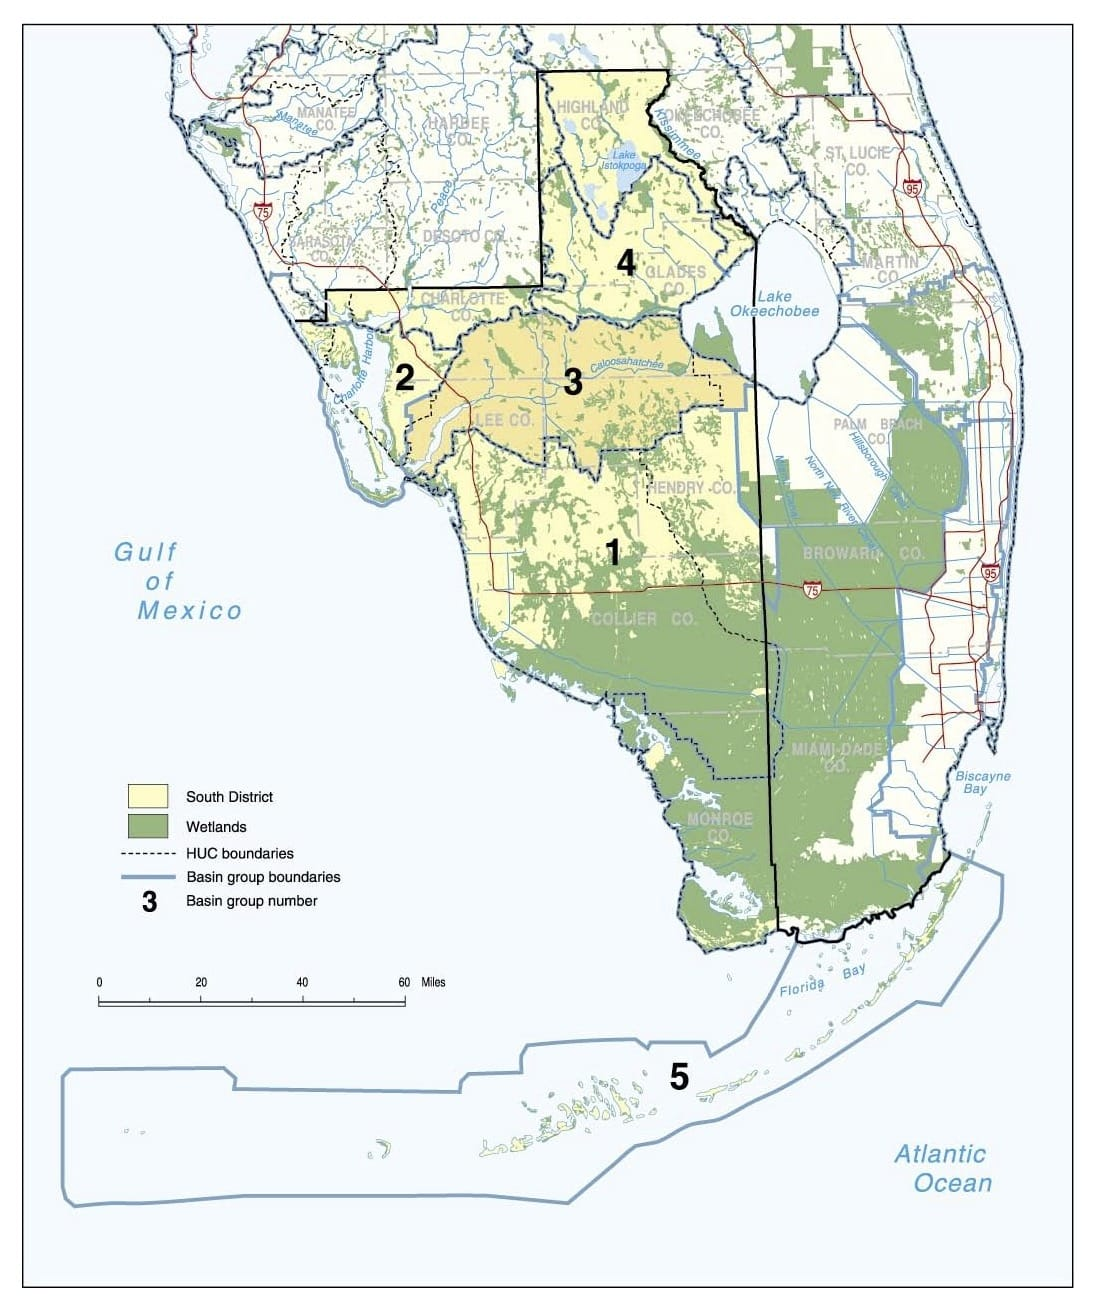 Sanibel & Caloosahatchee Watershed Report - Regional Water Management Issues.